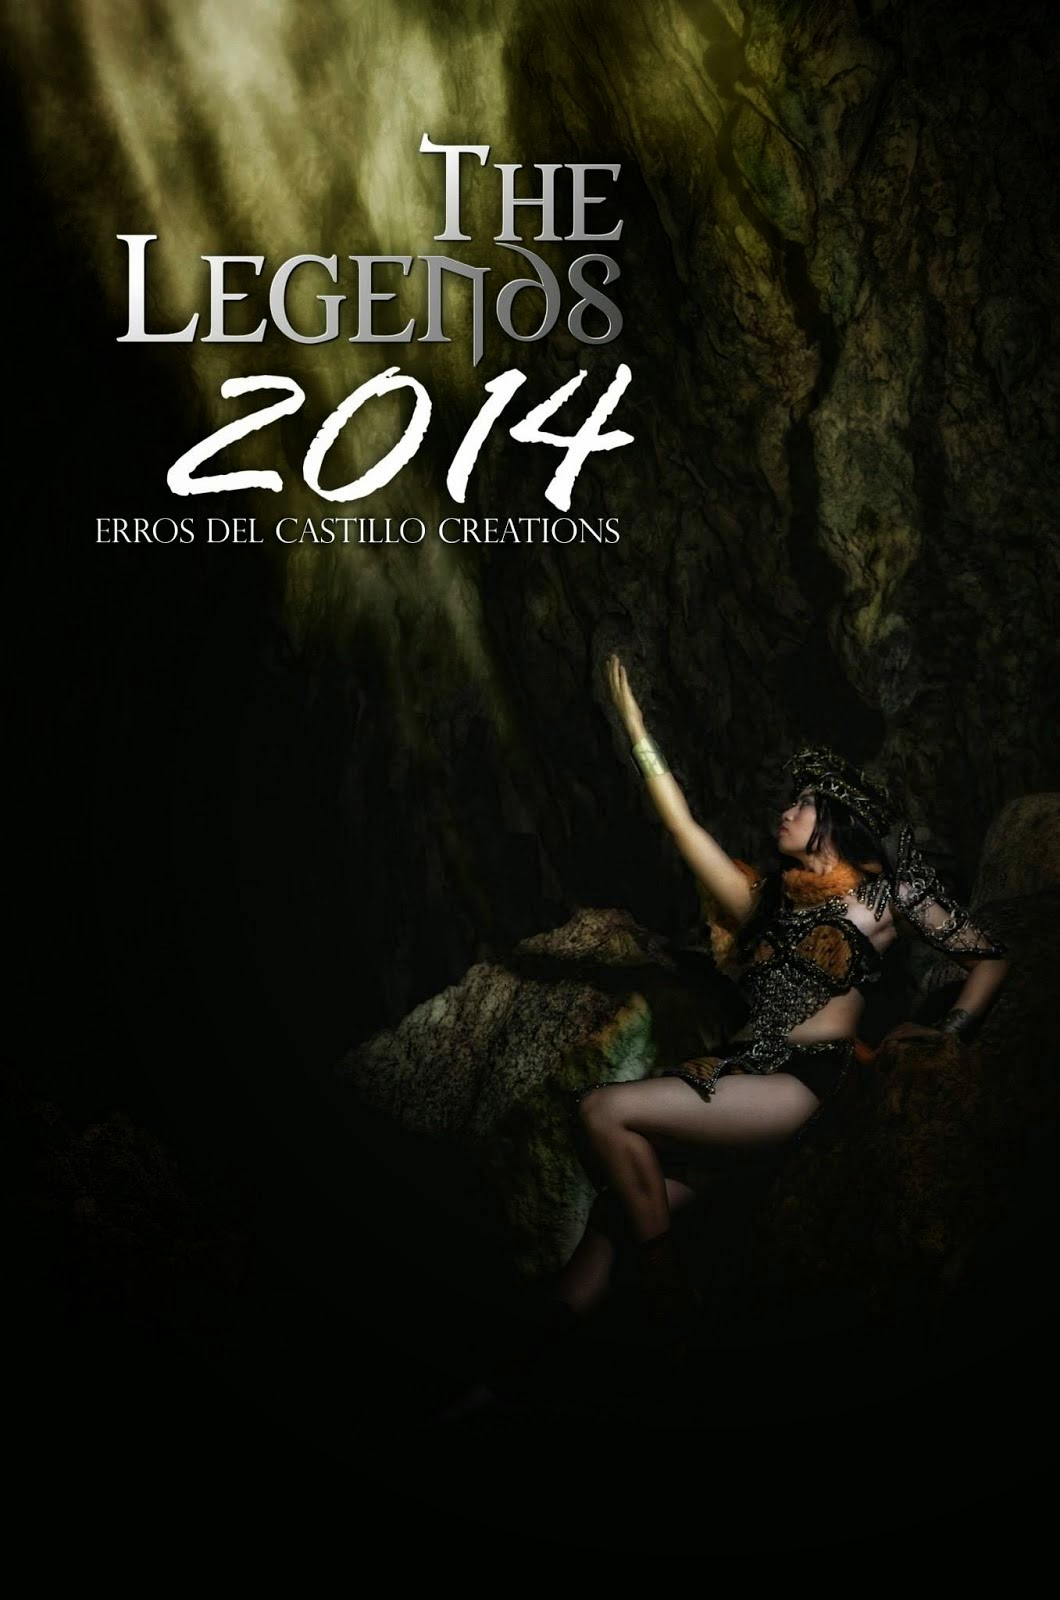 ERROS *** [LEGENDS2]COLLECTION LOCATION SHOOT